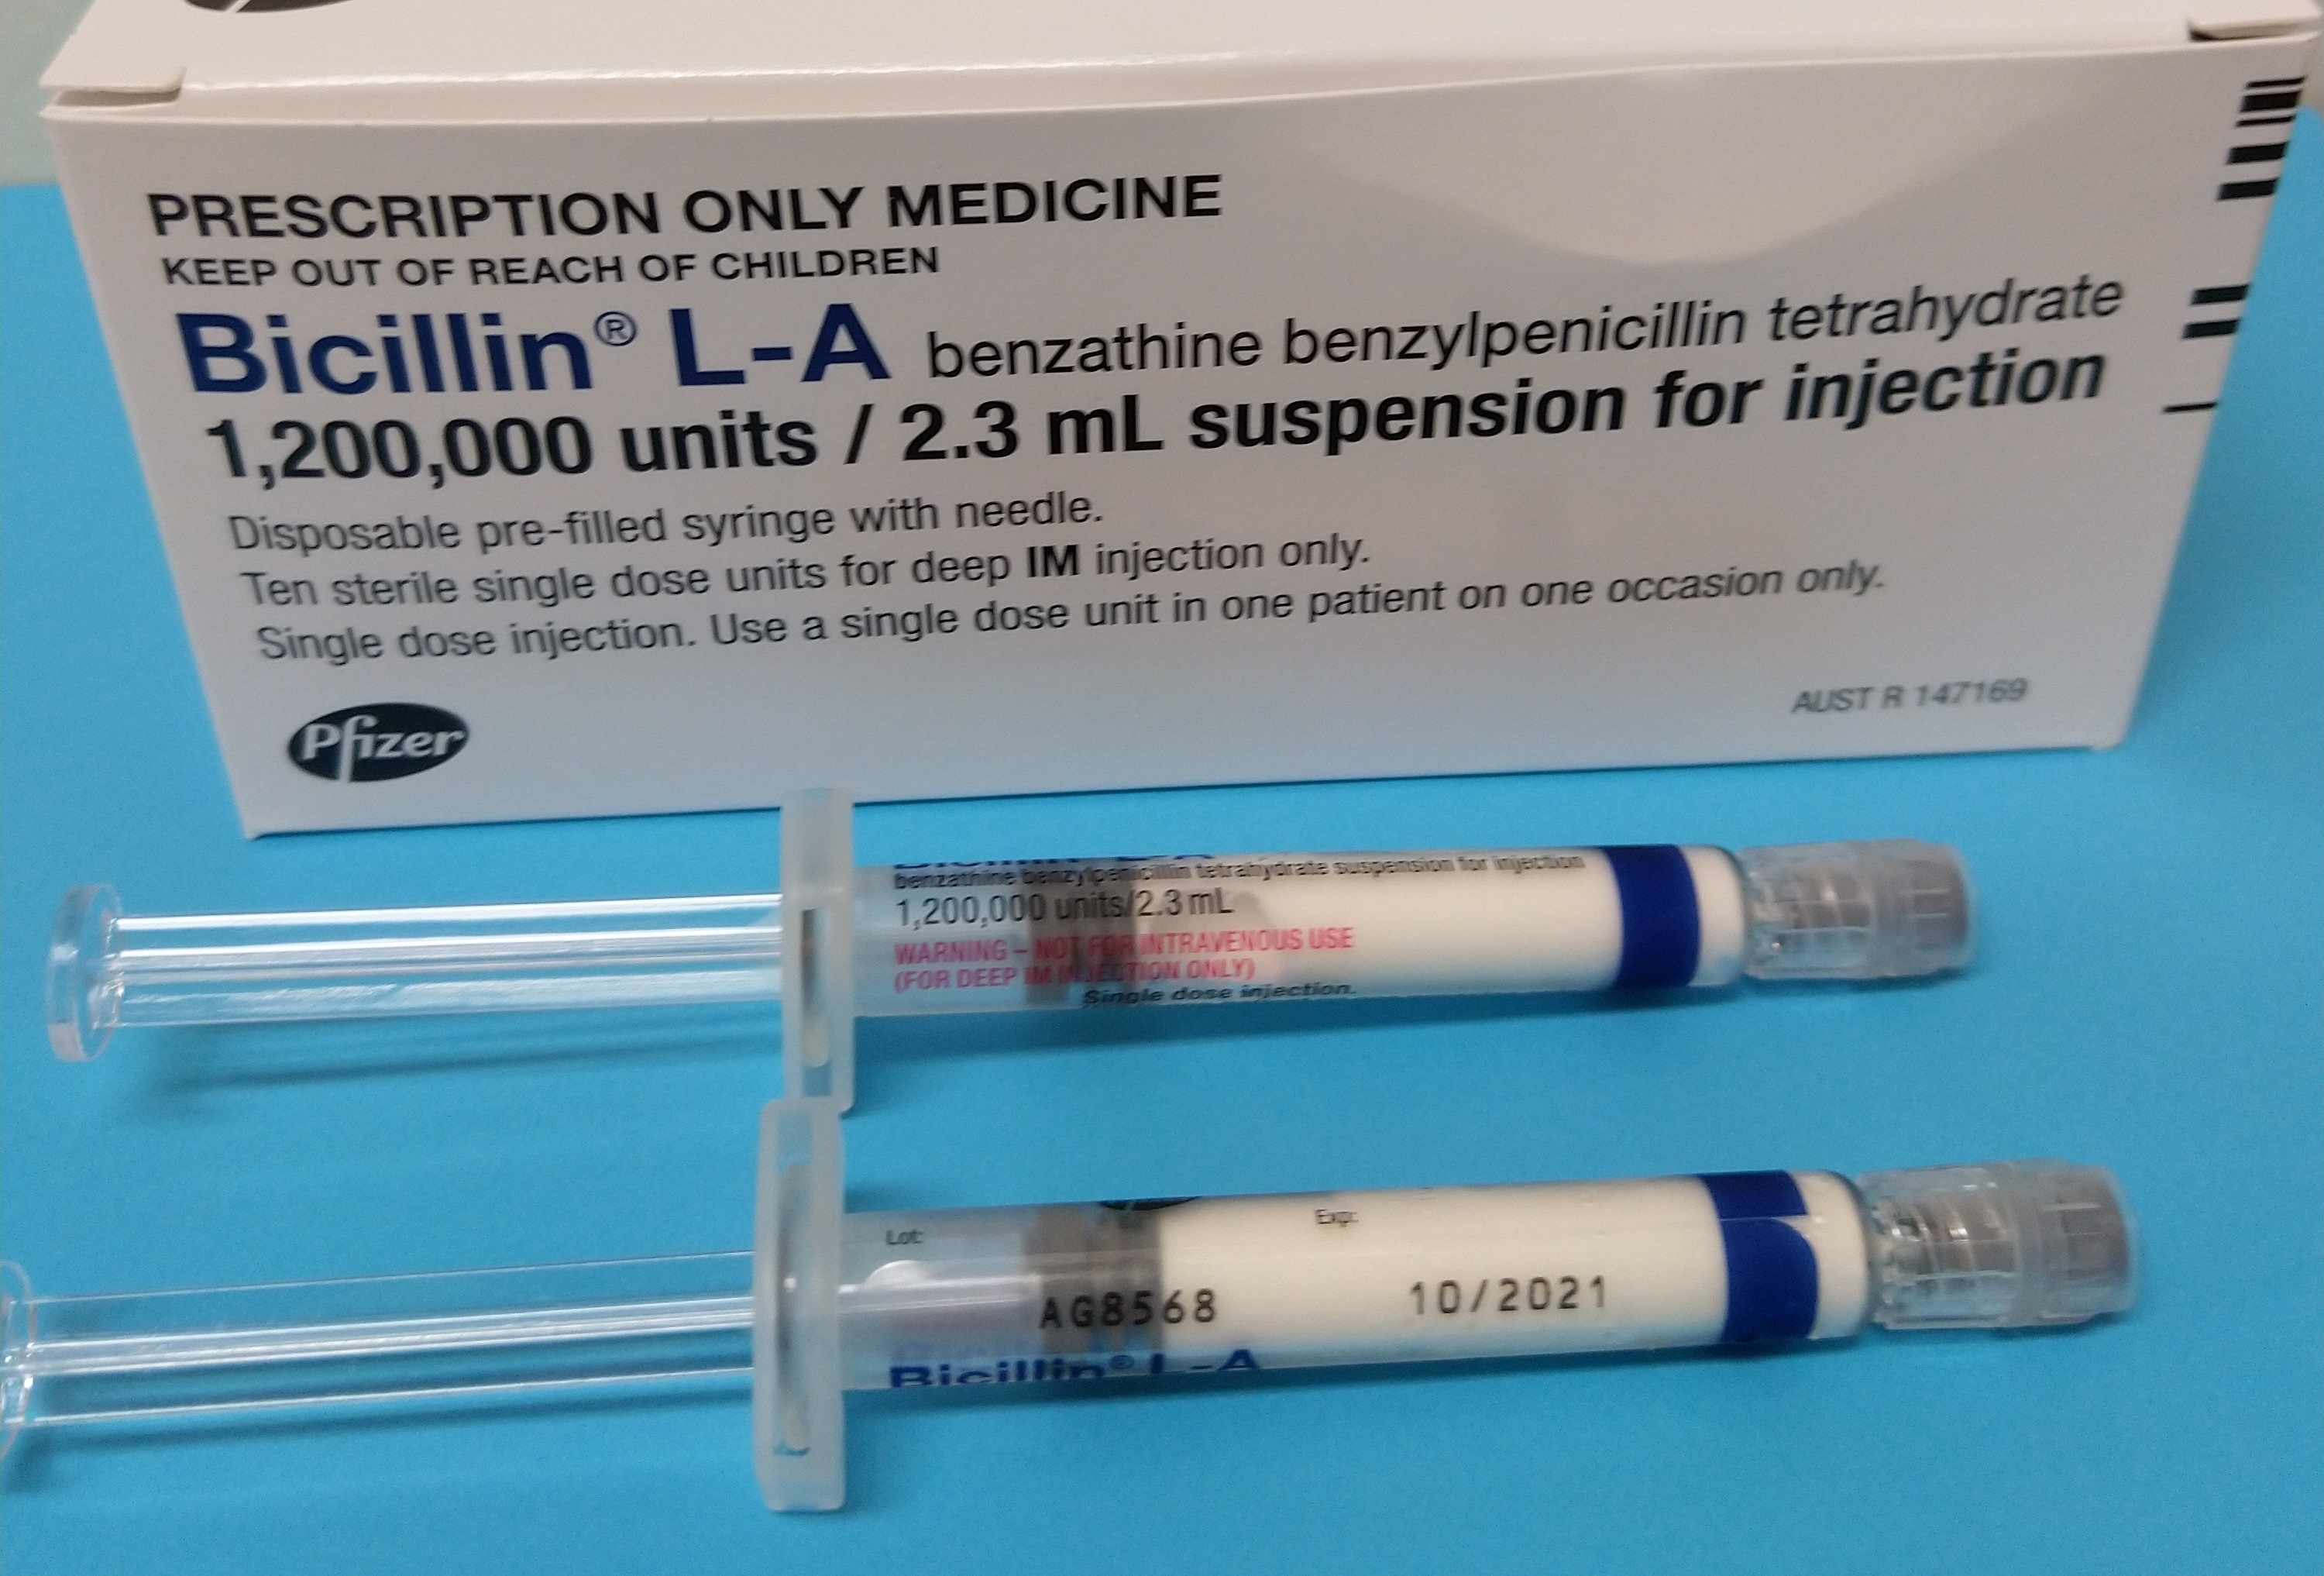 Bicillin box and 2 single dose syringes